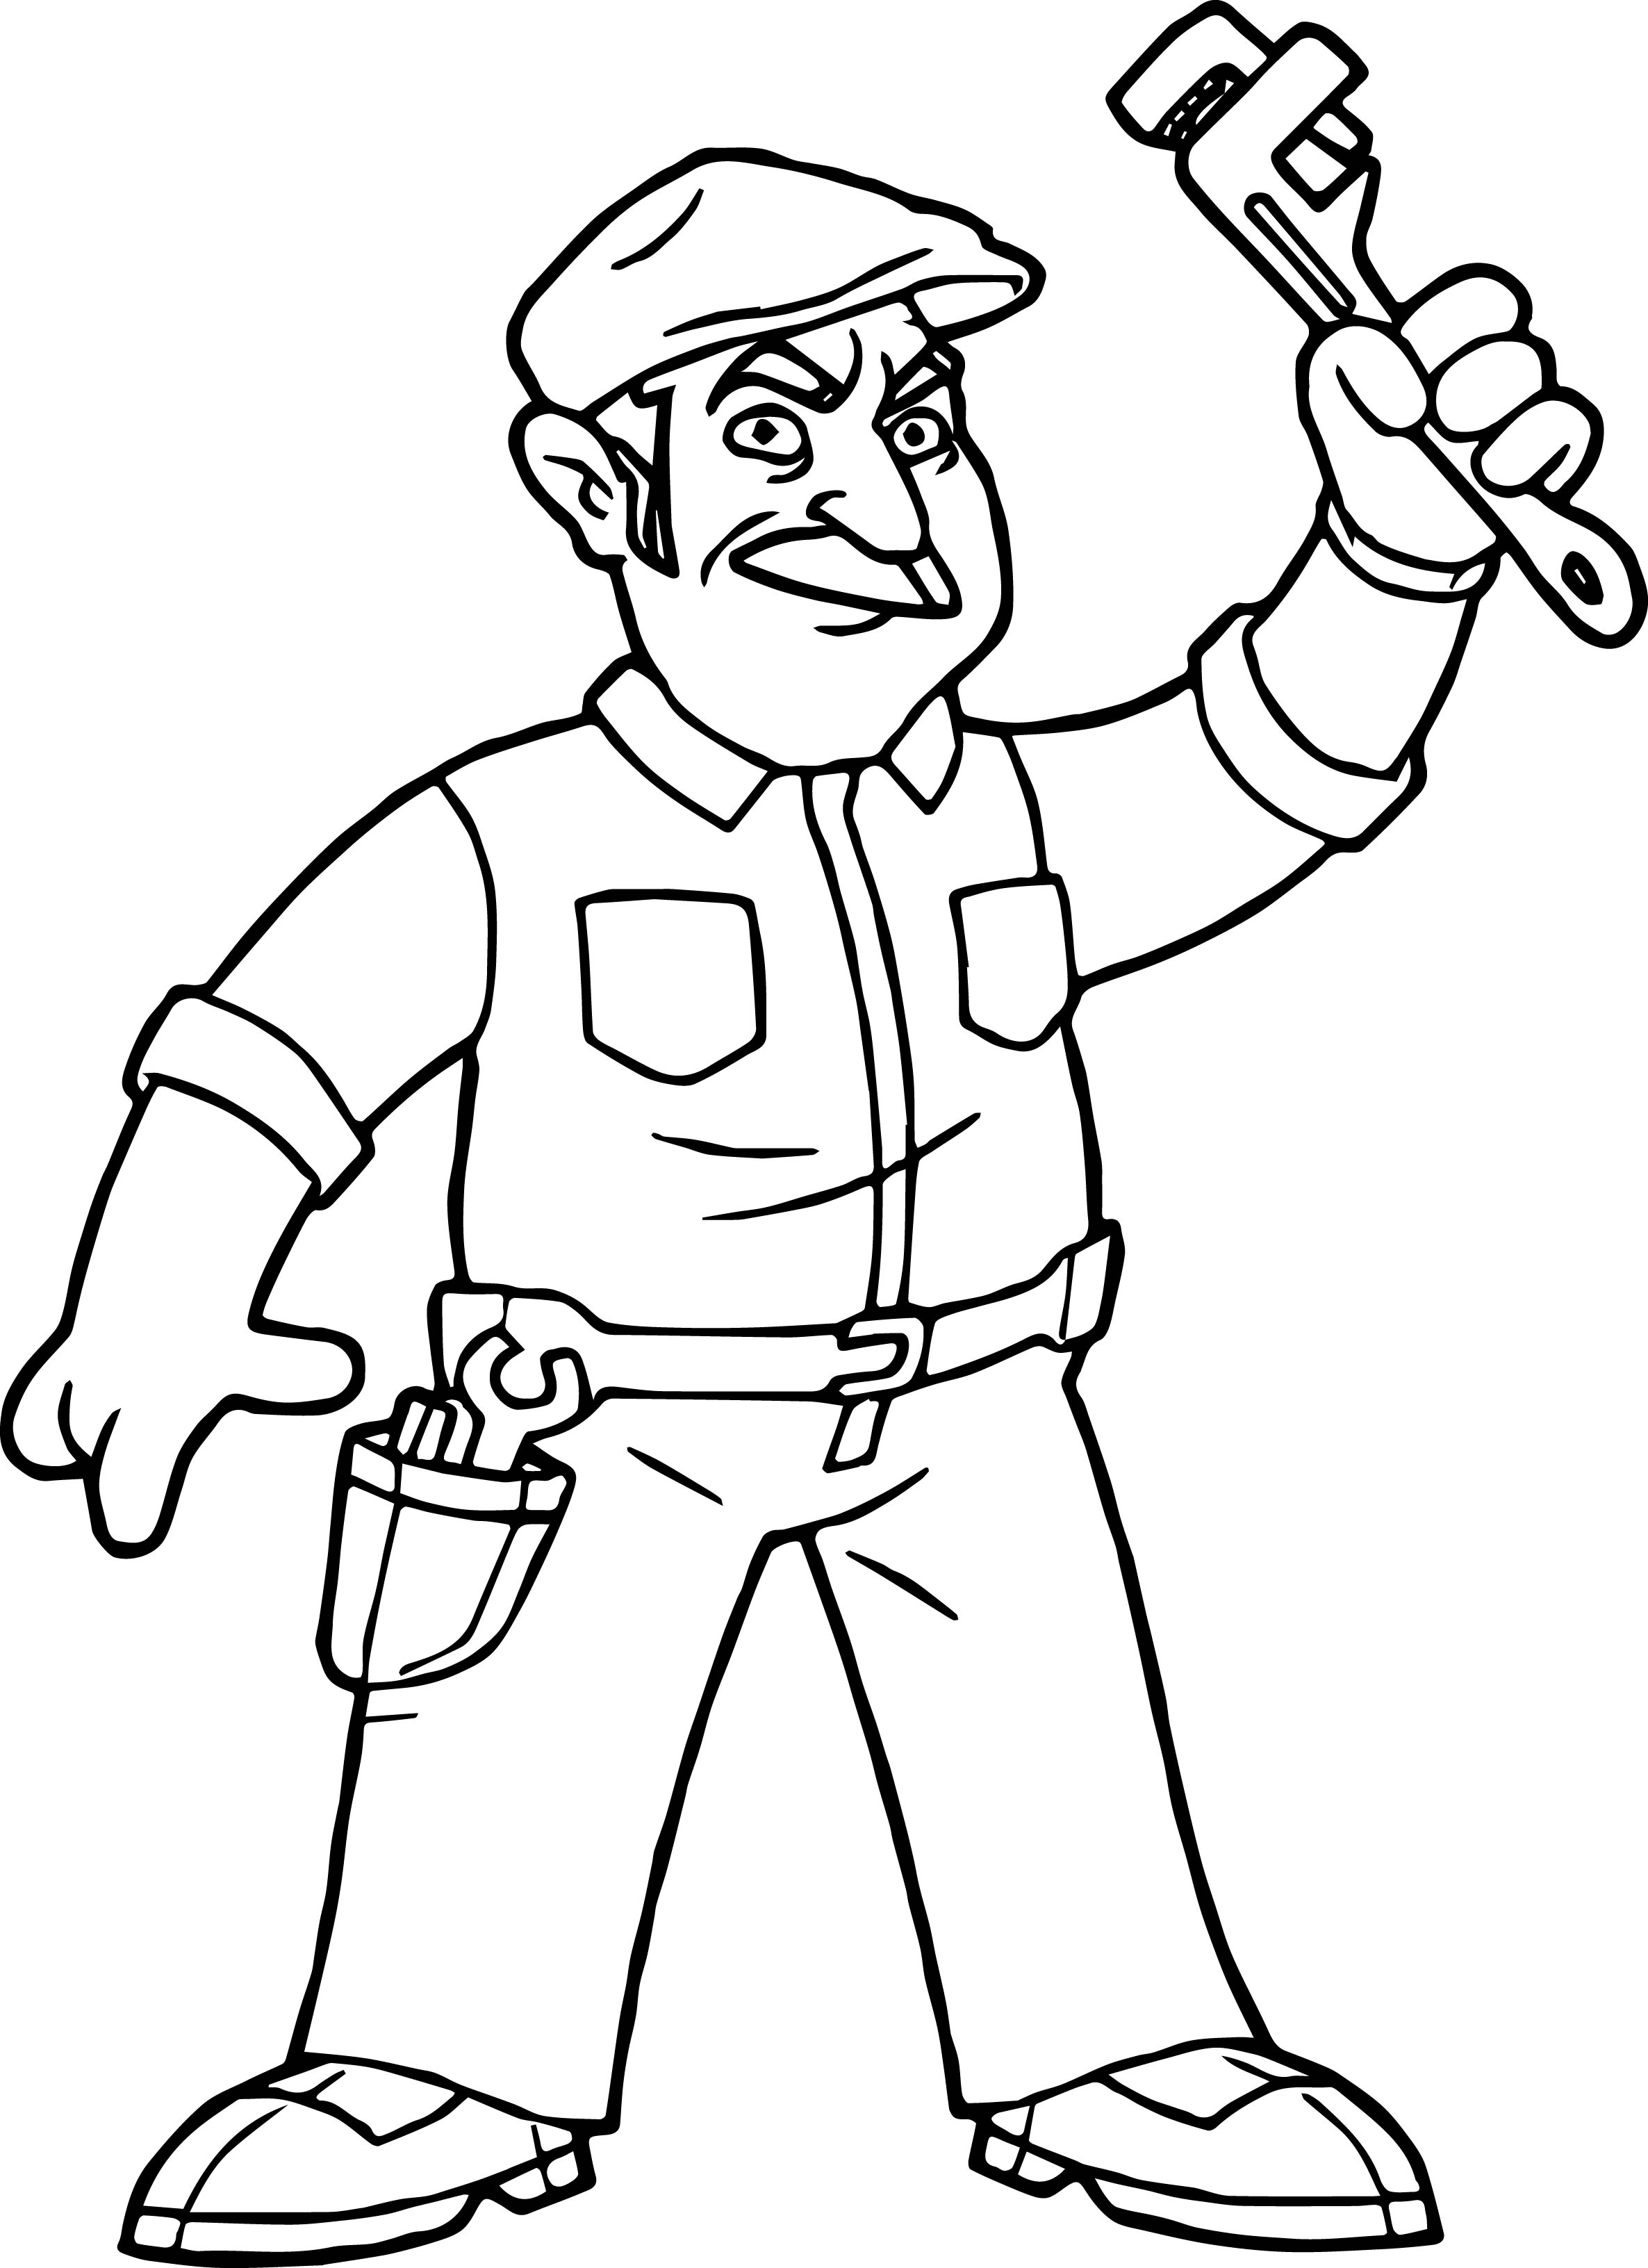 Super Mario Movie Bob Hoskins Super Mario Coloring Page